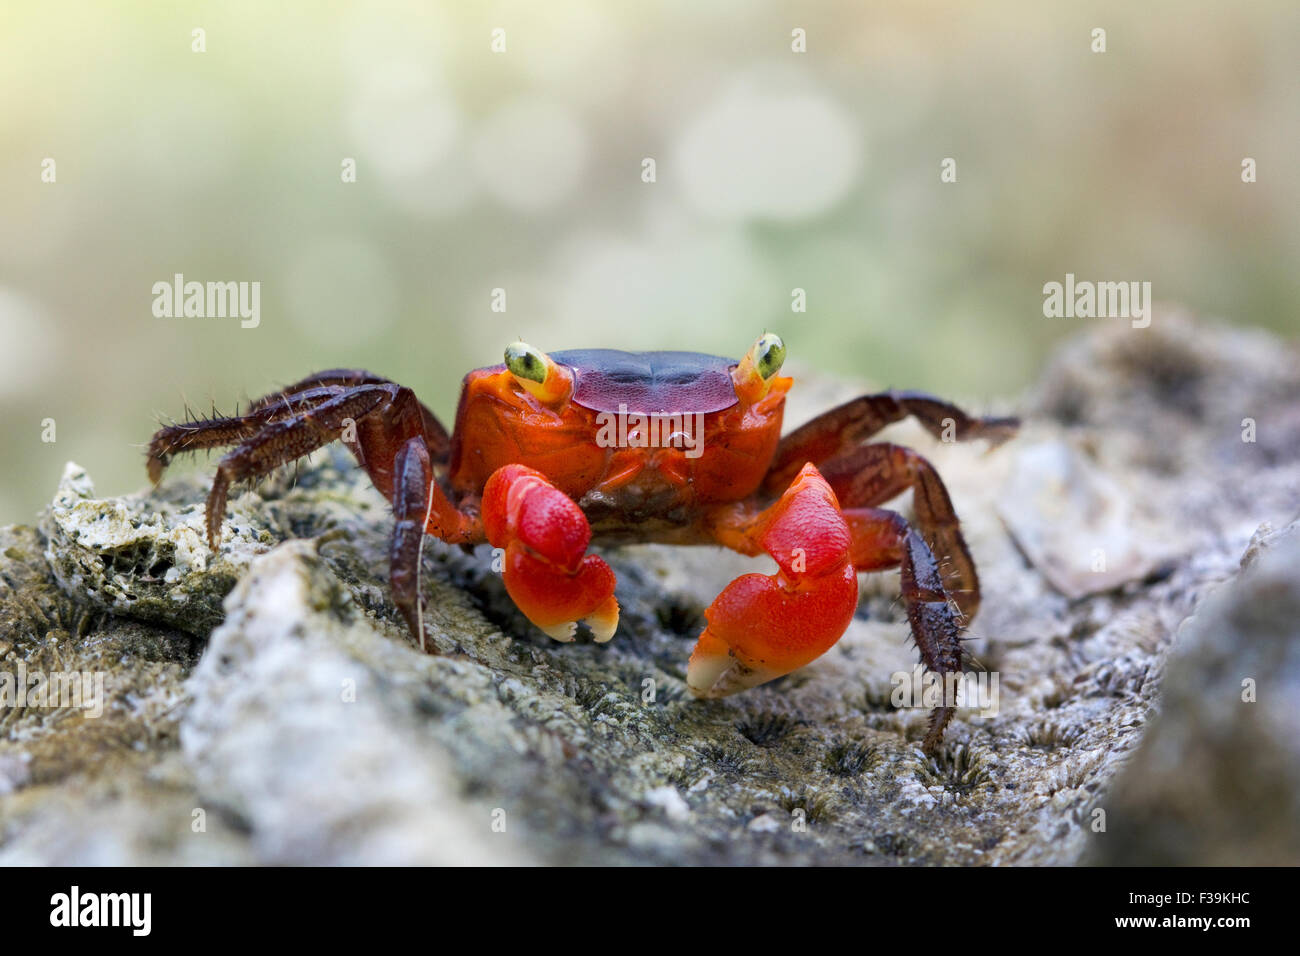 Portrait of a red crab on a rock - Stock Image